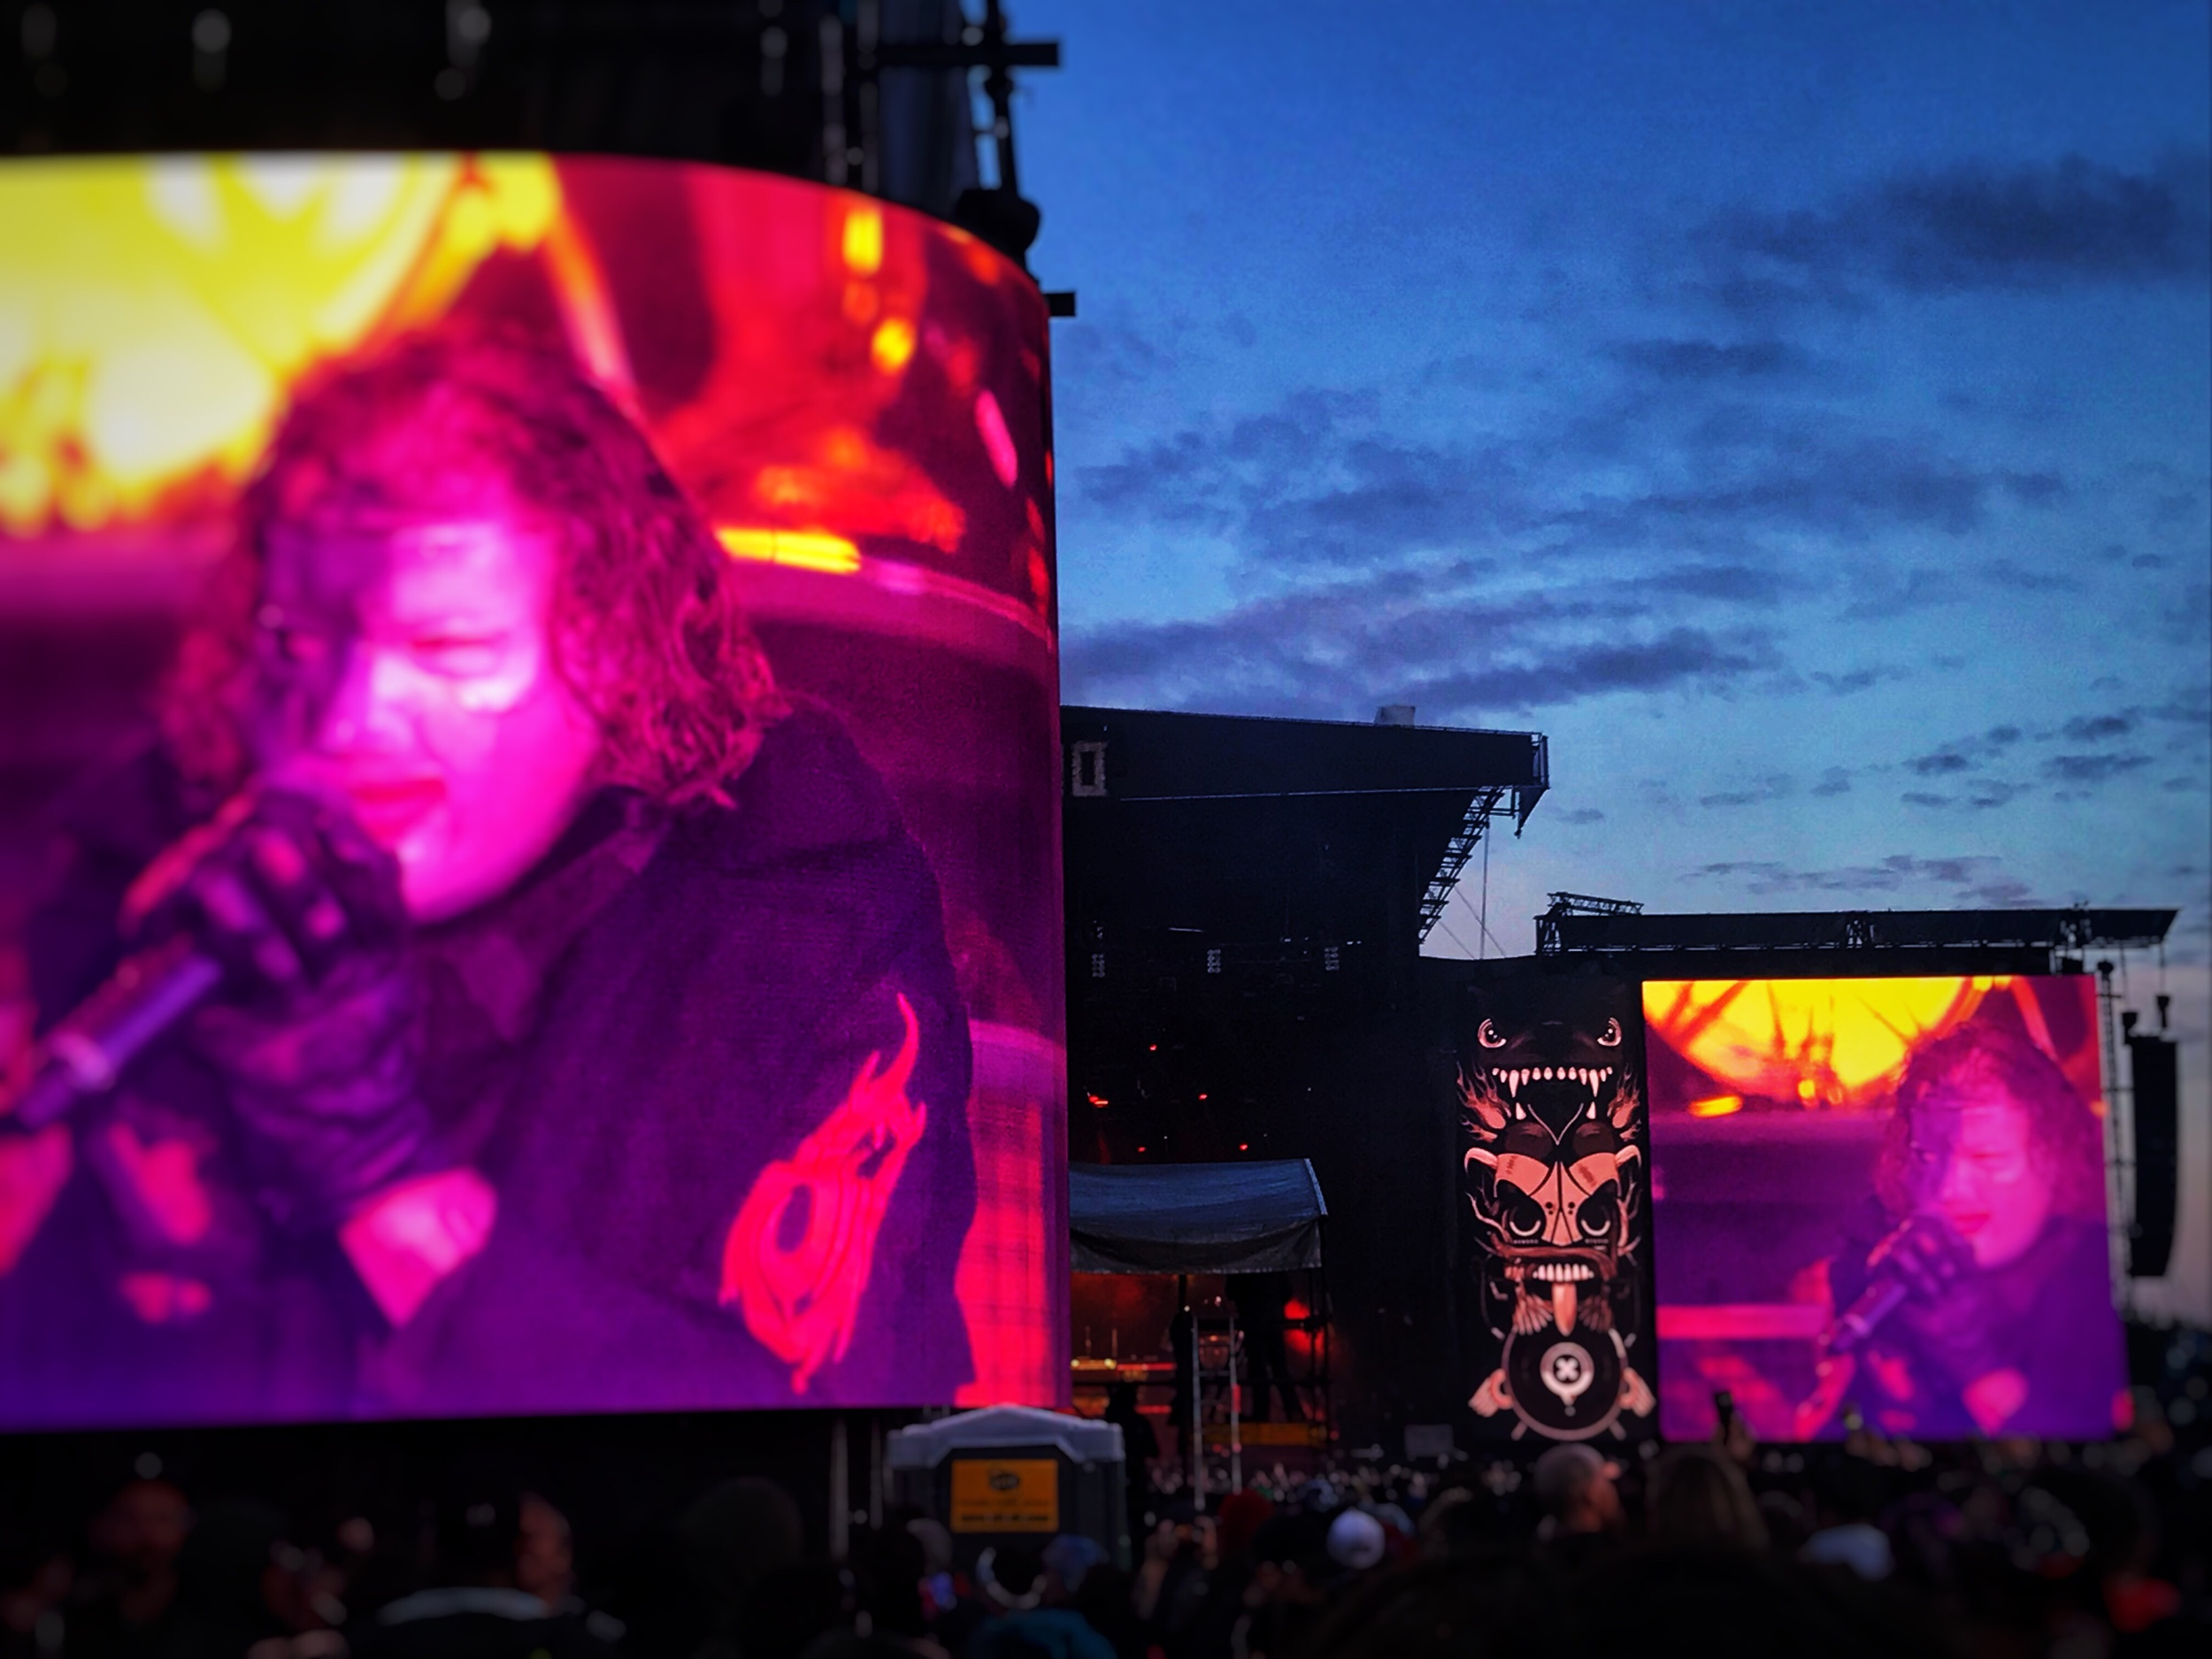 High definition for everybody. Slipknot on the big screens